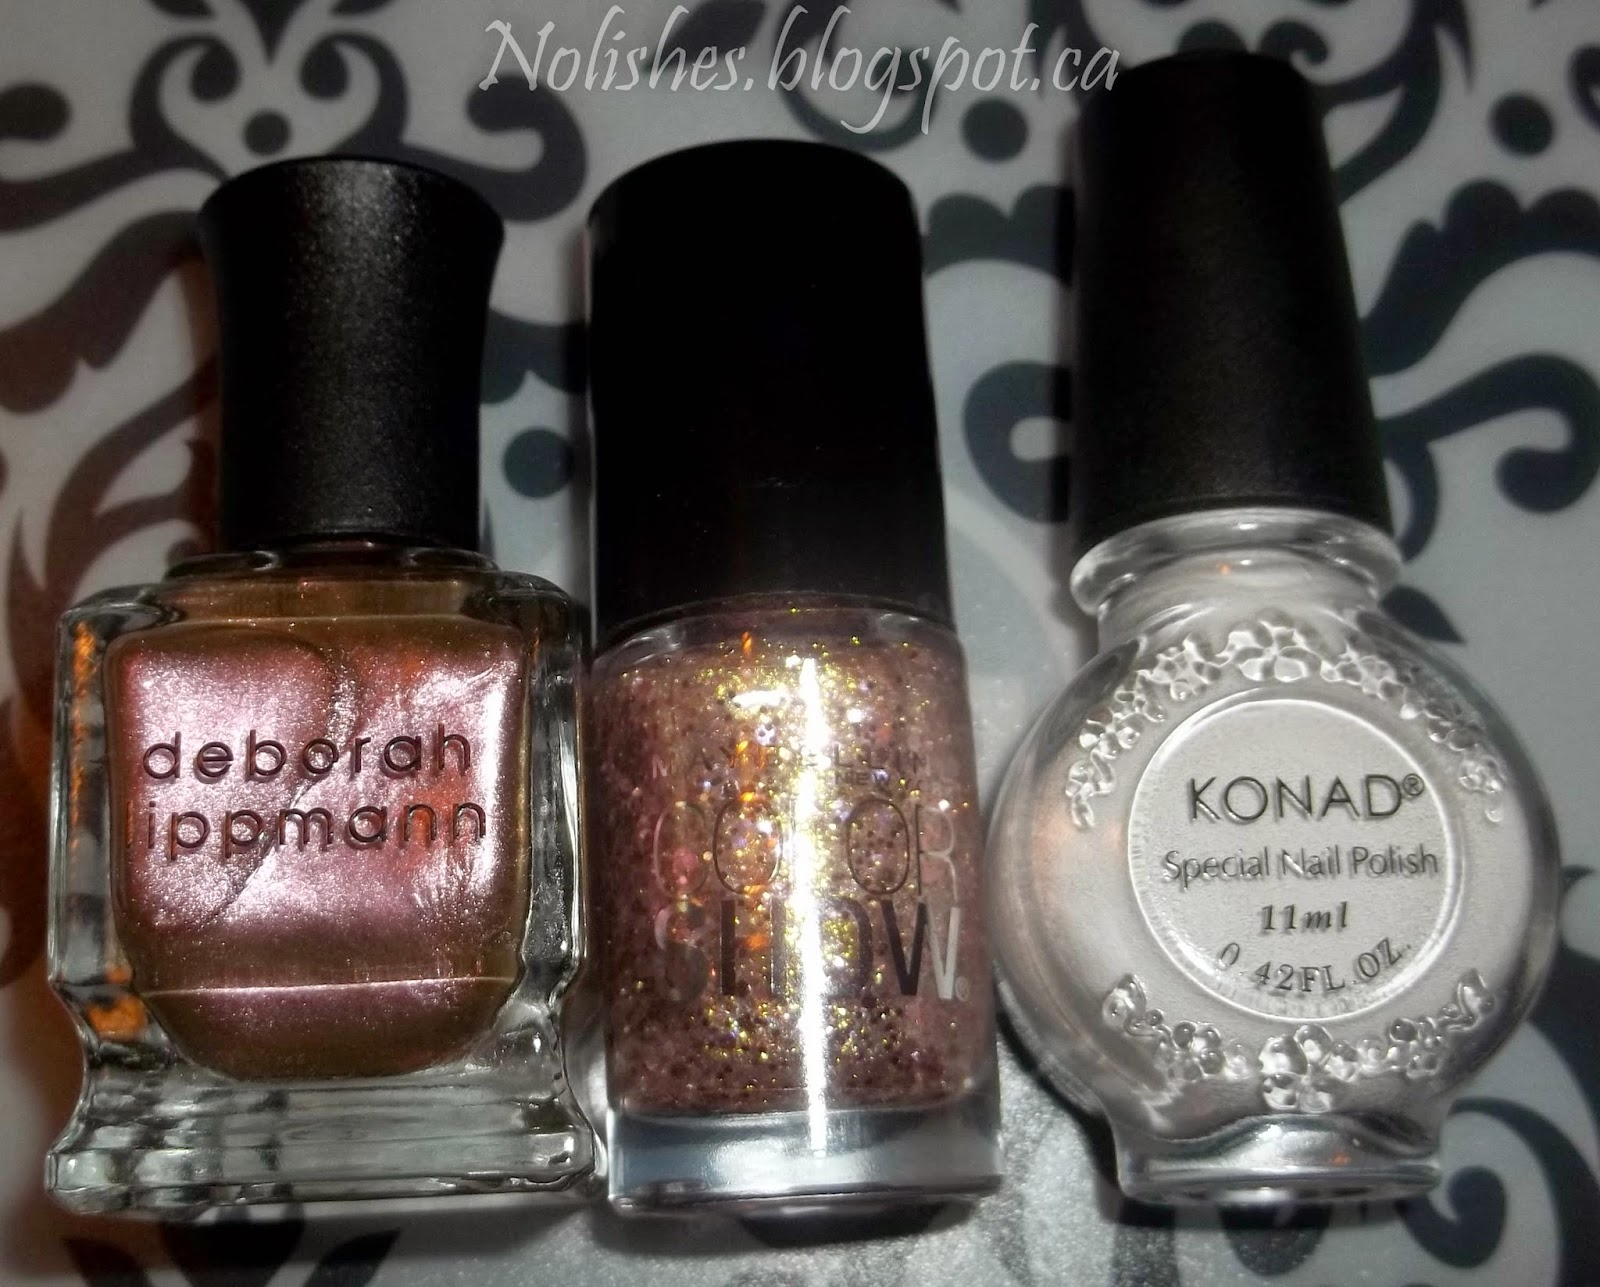 Deborah Lippmann 'Sugar Daddy', Mabelline Color Show 'Gilded Rose', and Konad Special Polish in White